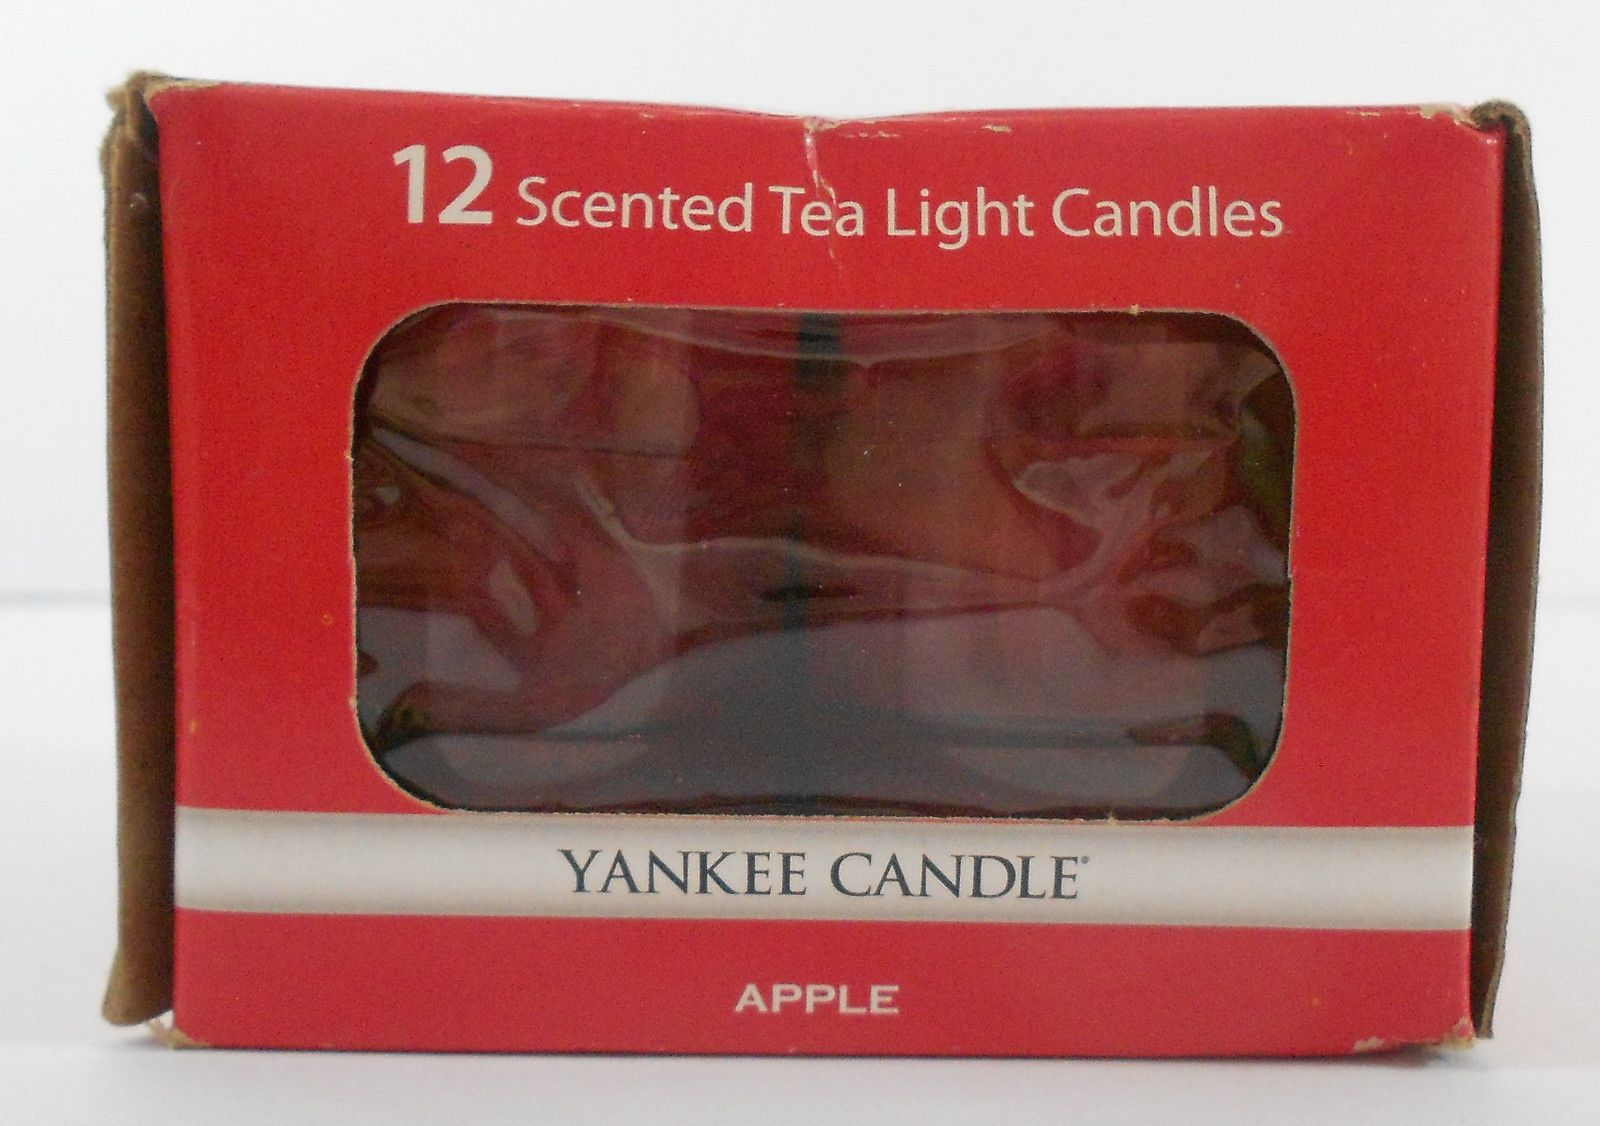 Yankee candle apple scented tea light candles set of brand new